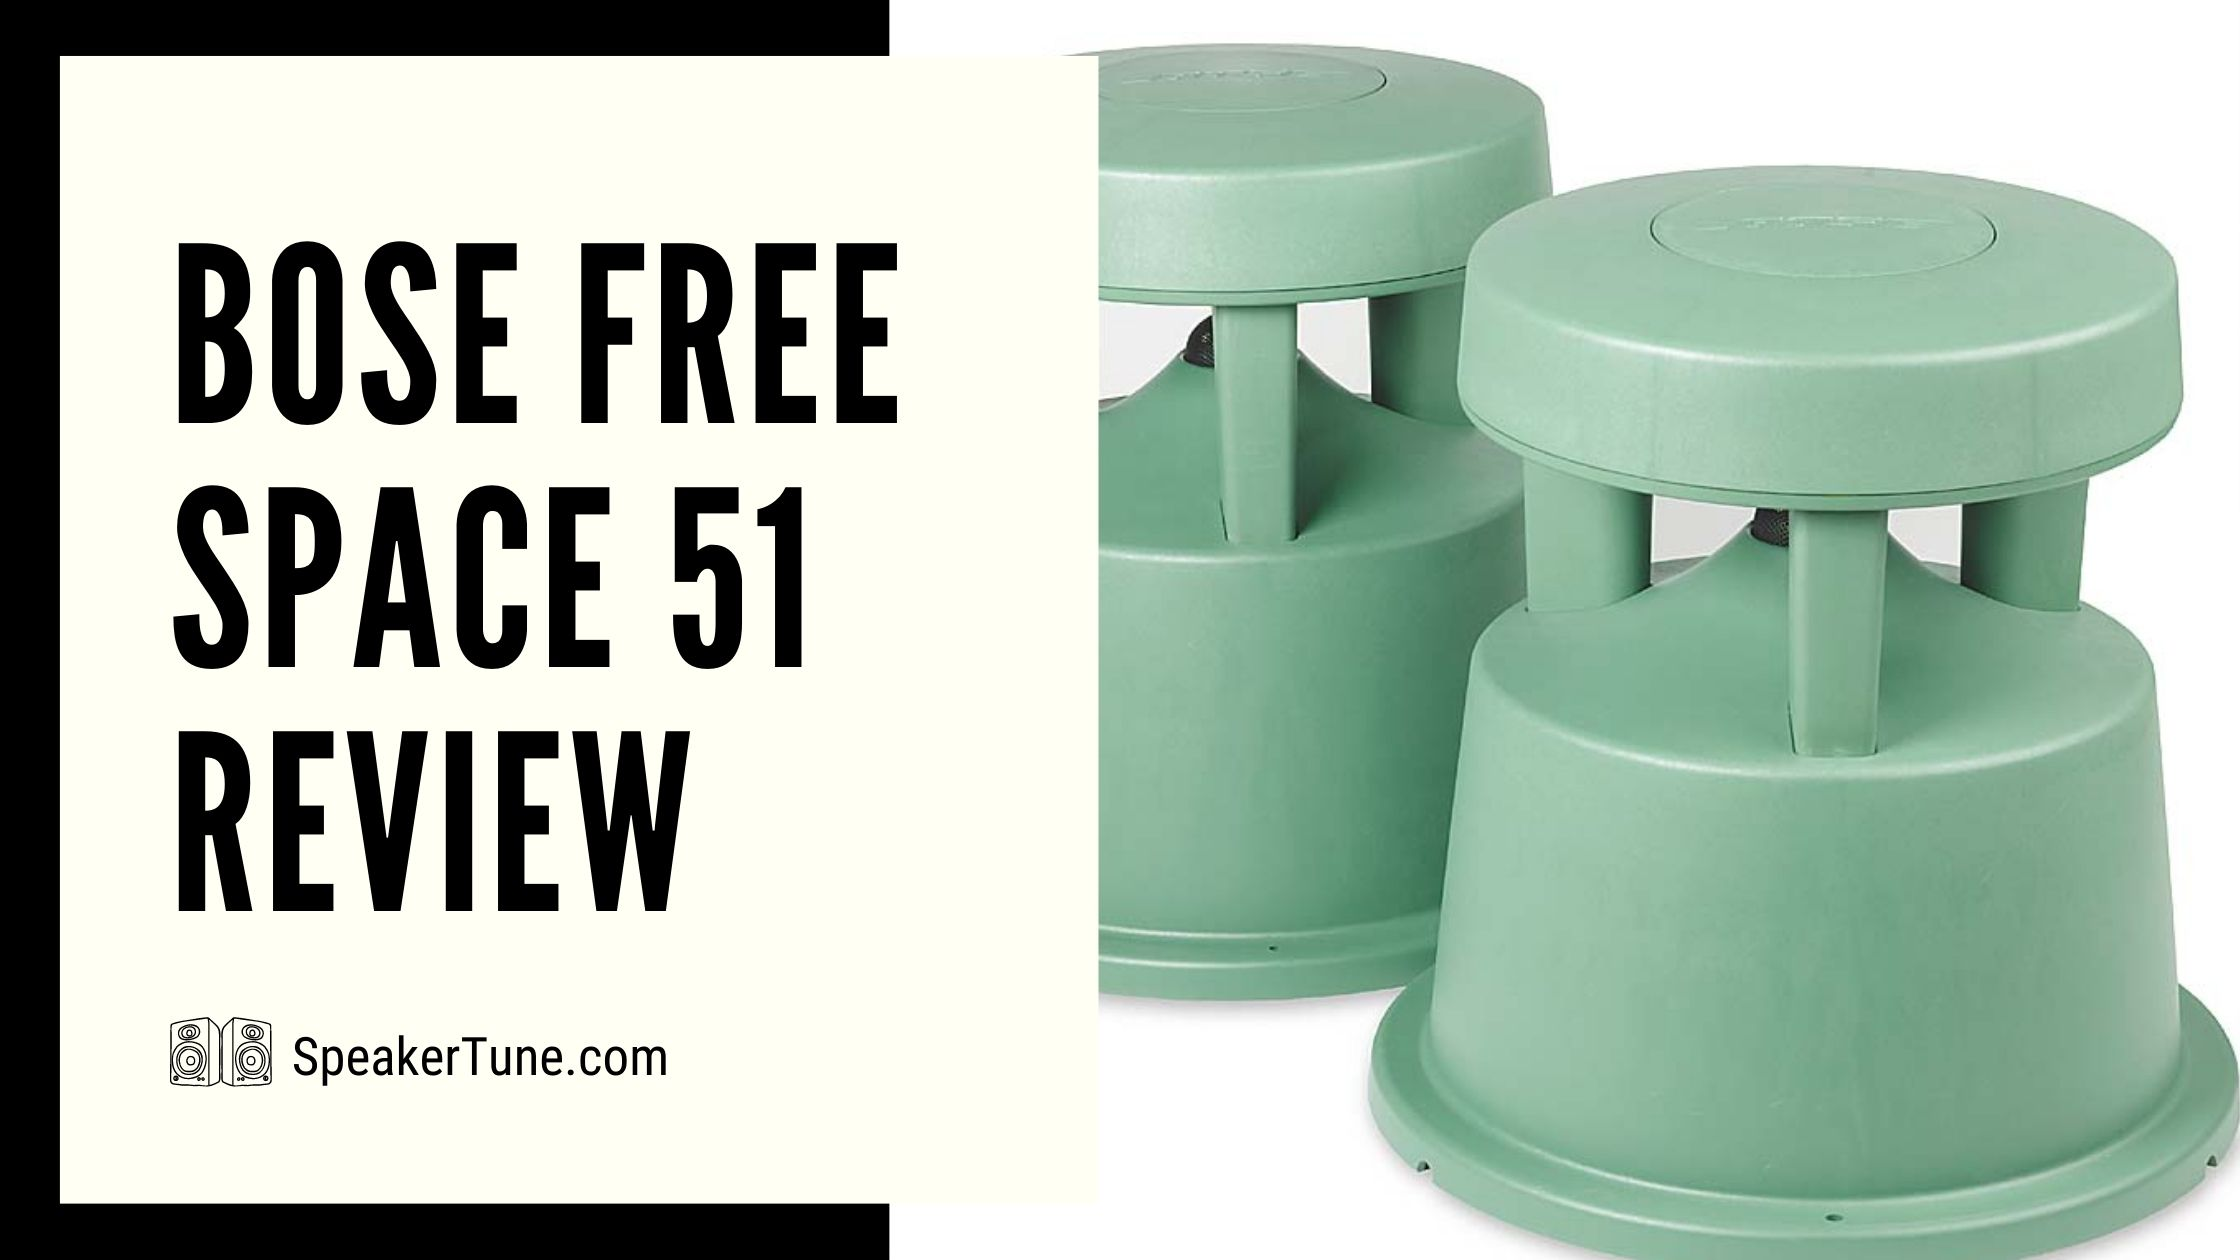 ST-Bose-free-space-51-review